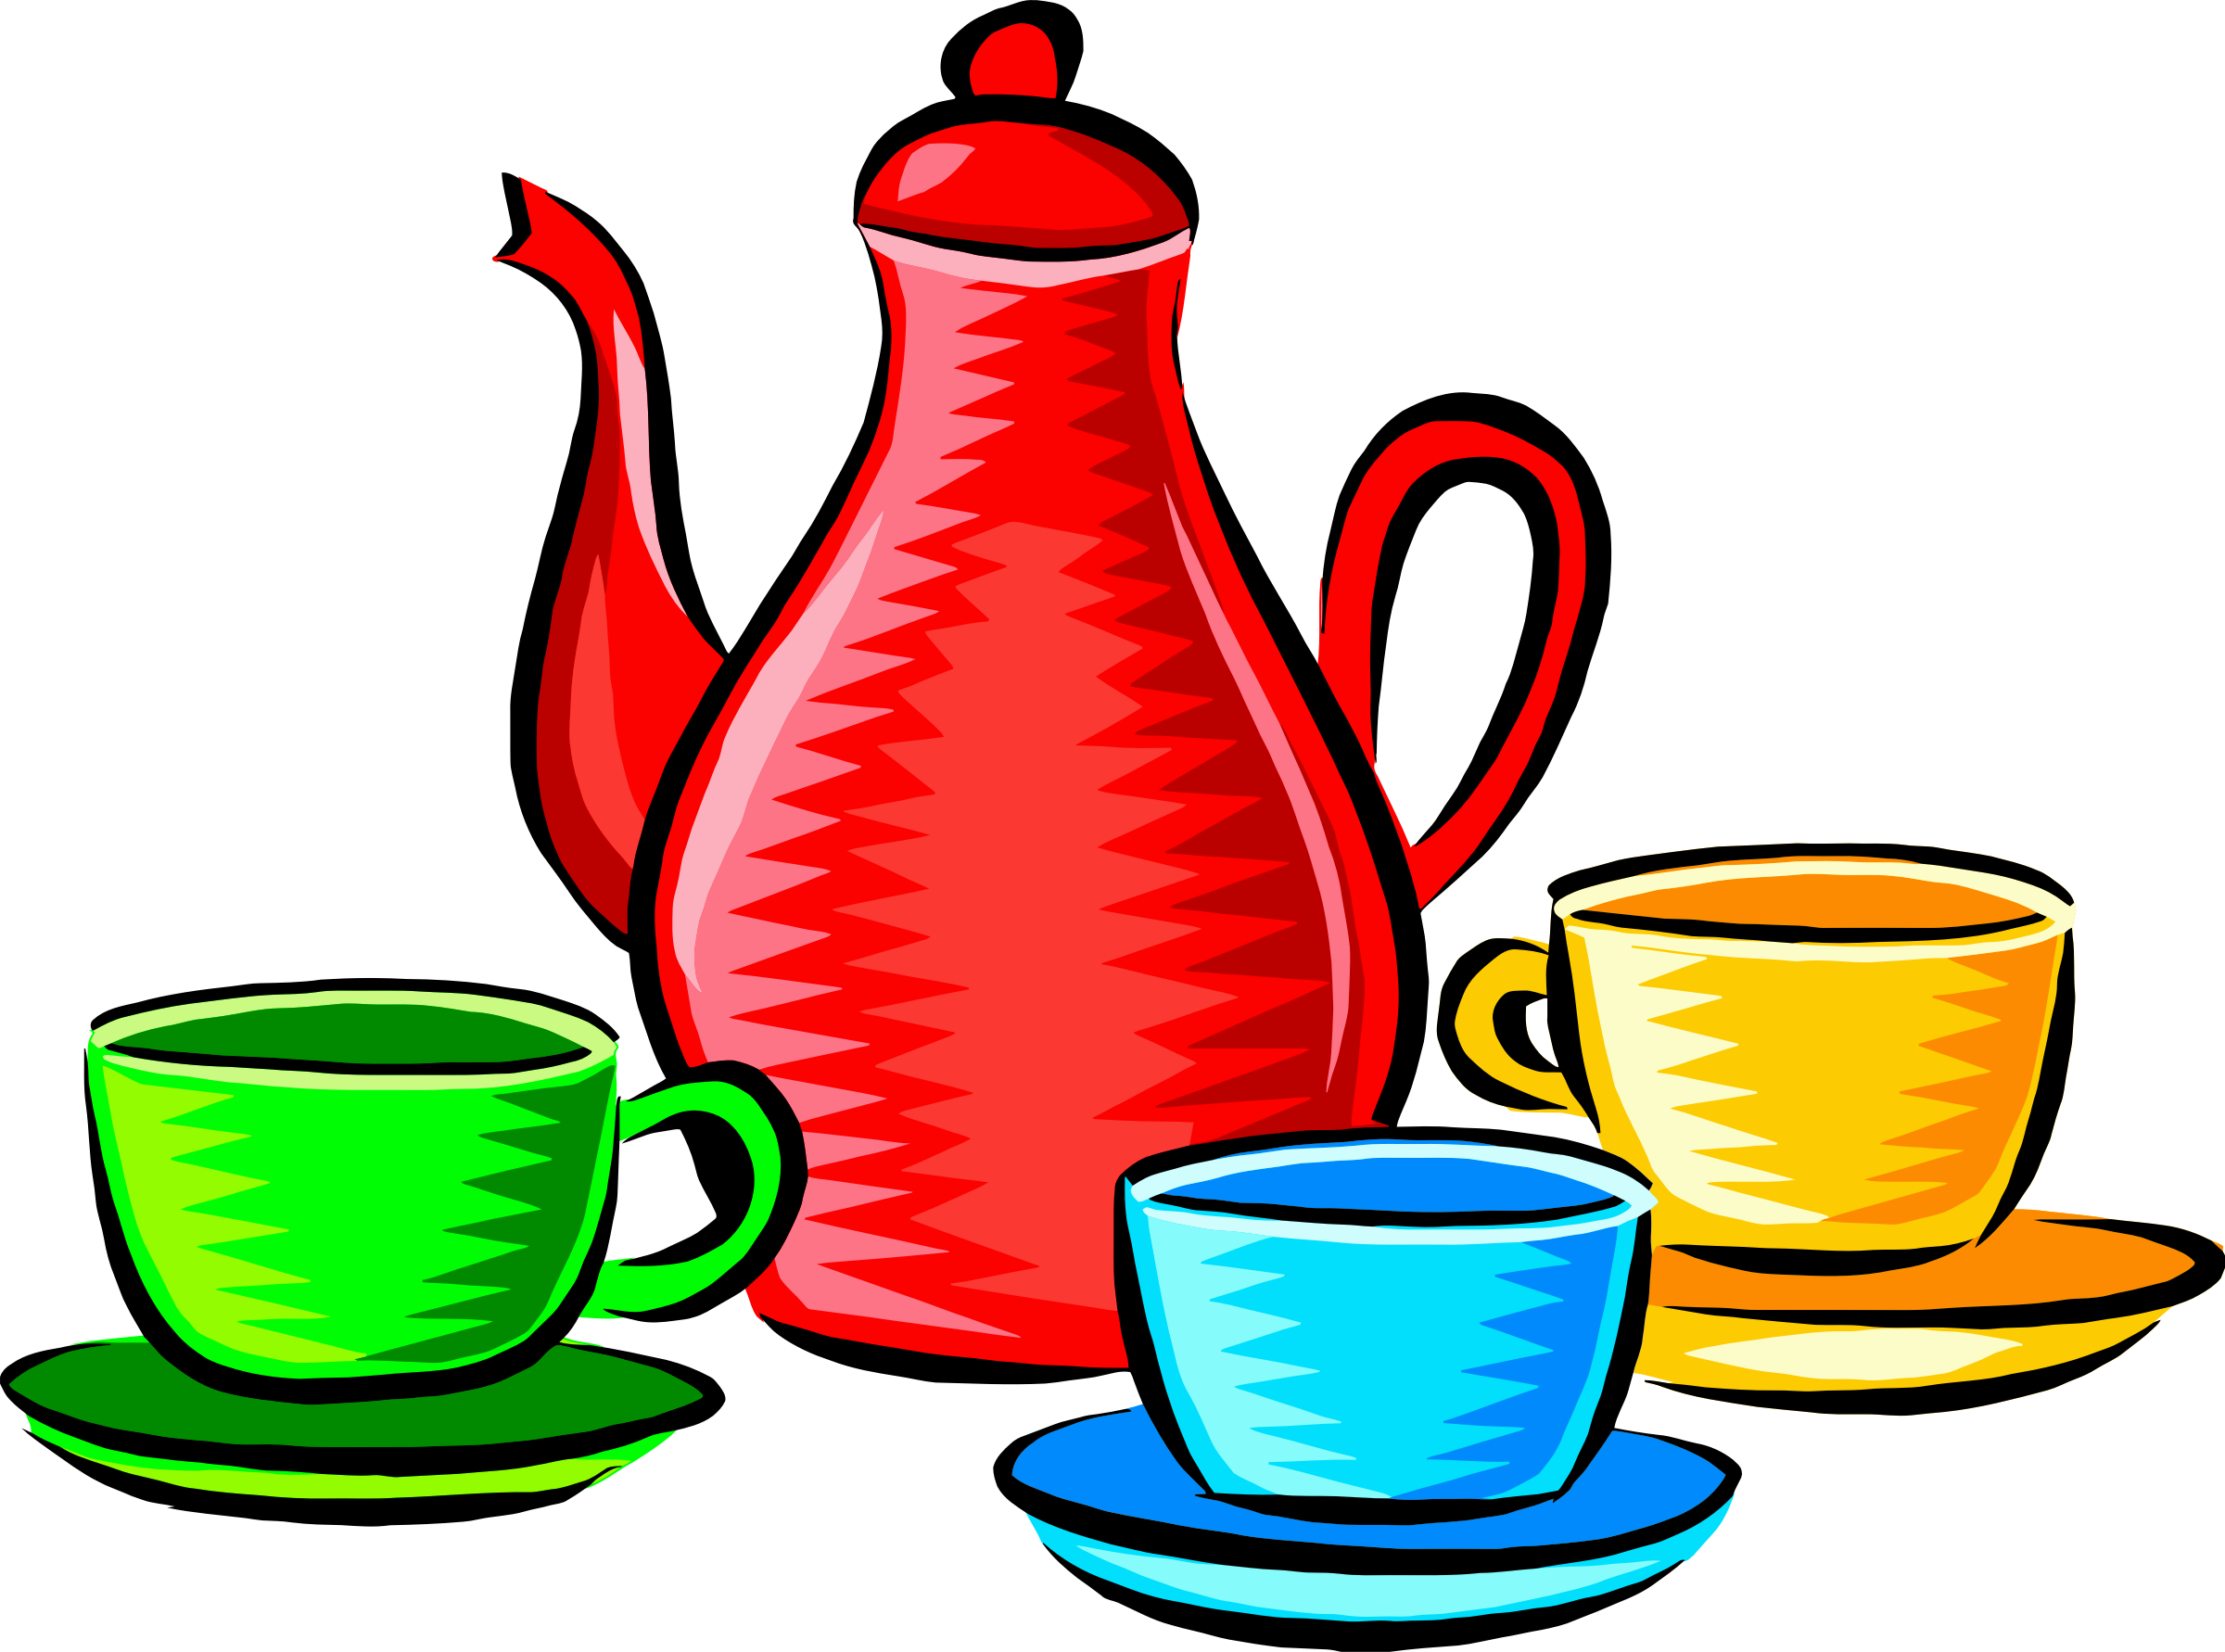 Coffee pot and cups (colour) by Firkin